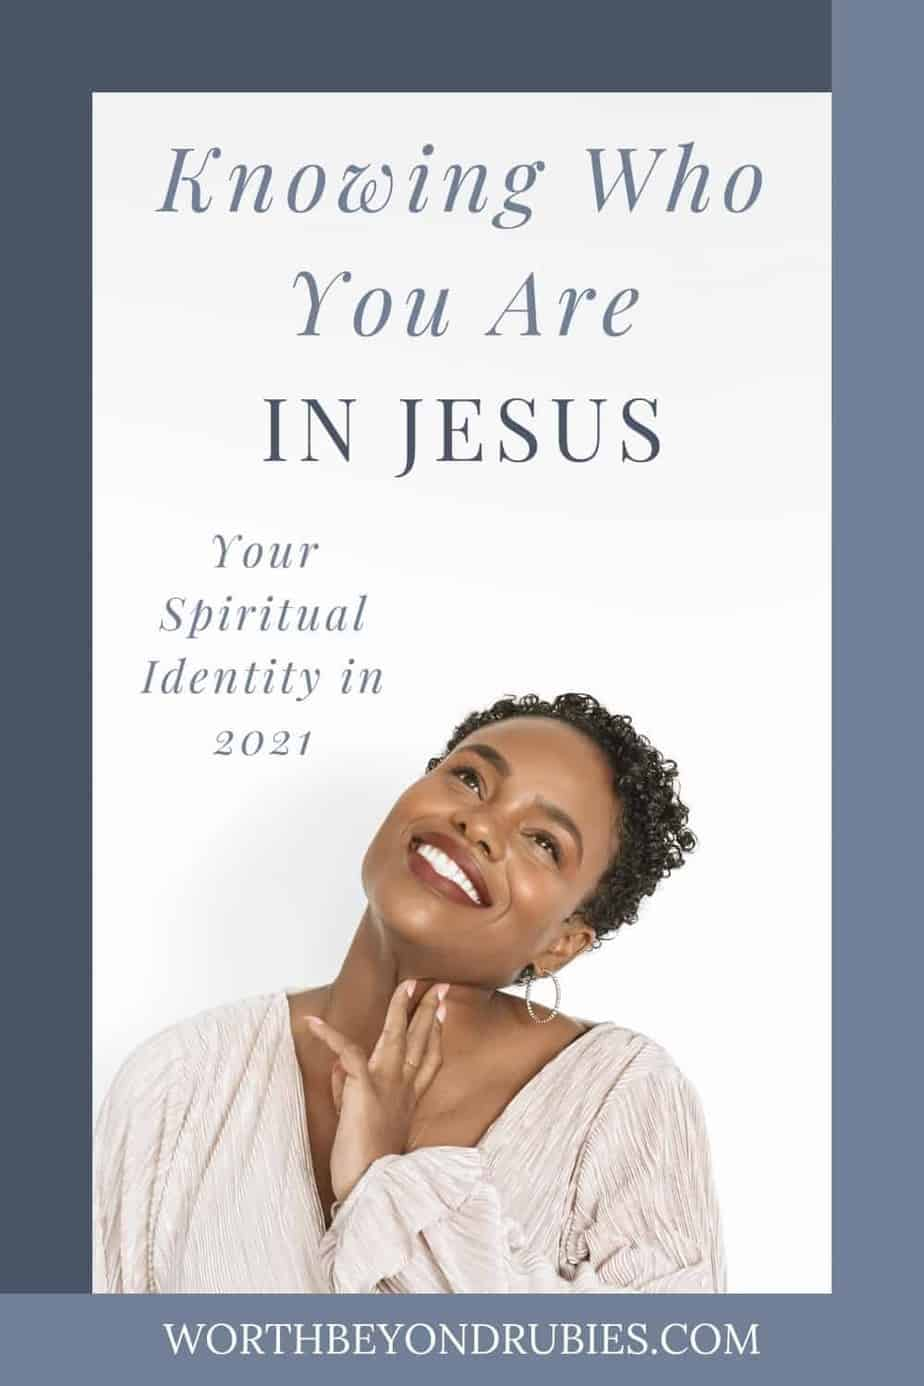 a beautiful smiling black woman with short hair and a beige blouse looking upwards and smiling with her fingers on her chin and text that says Knowing Who You Are in Christ Jesus - Your Spiritual Identity in 2021